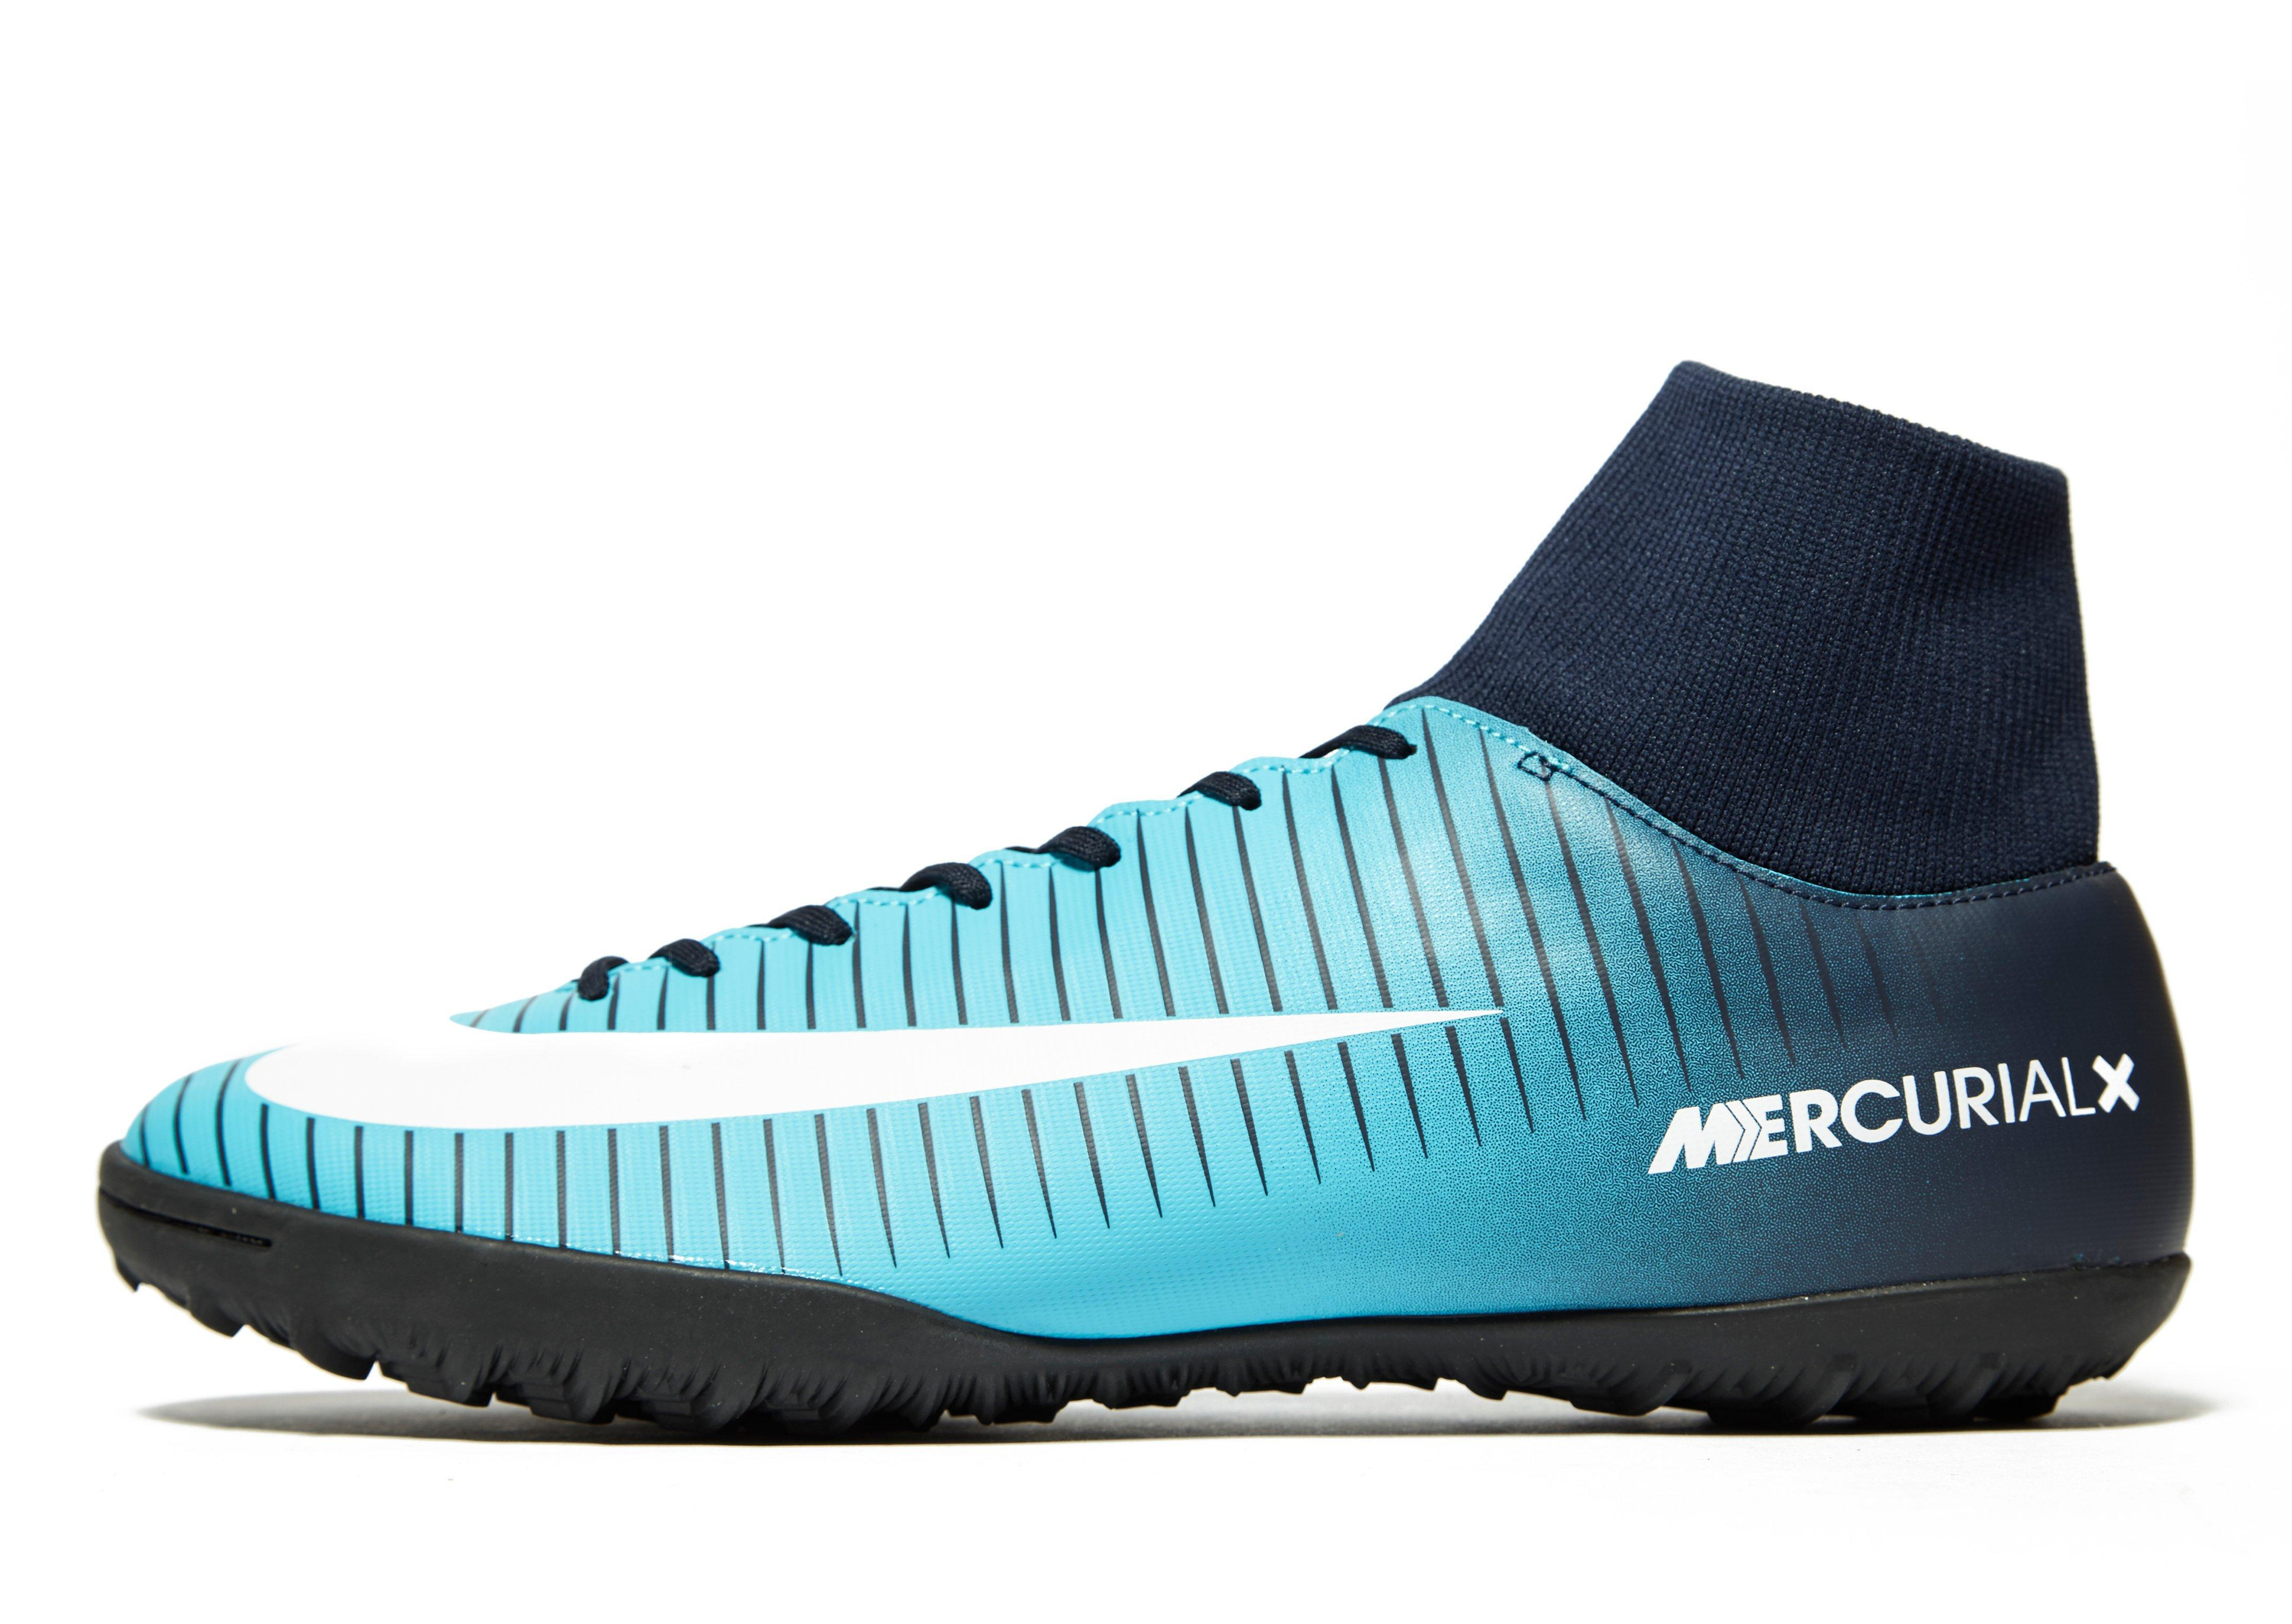 55d2c6526 Nike Fire And Ice Mercurial Veloce Dynamic Fit Tf in Blue for Men - Lyst